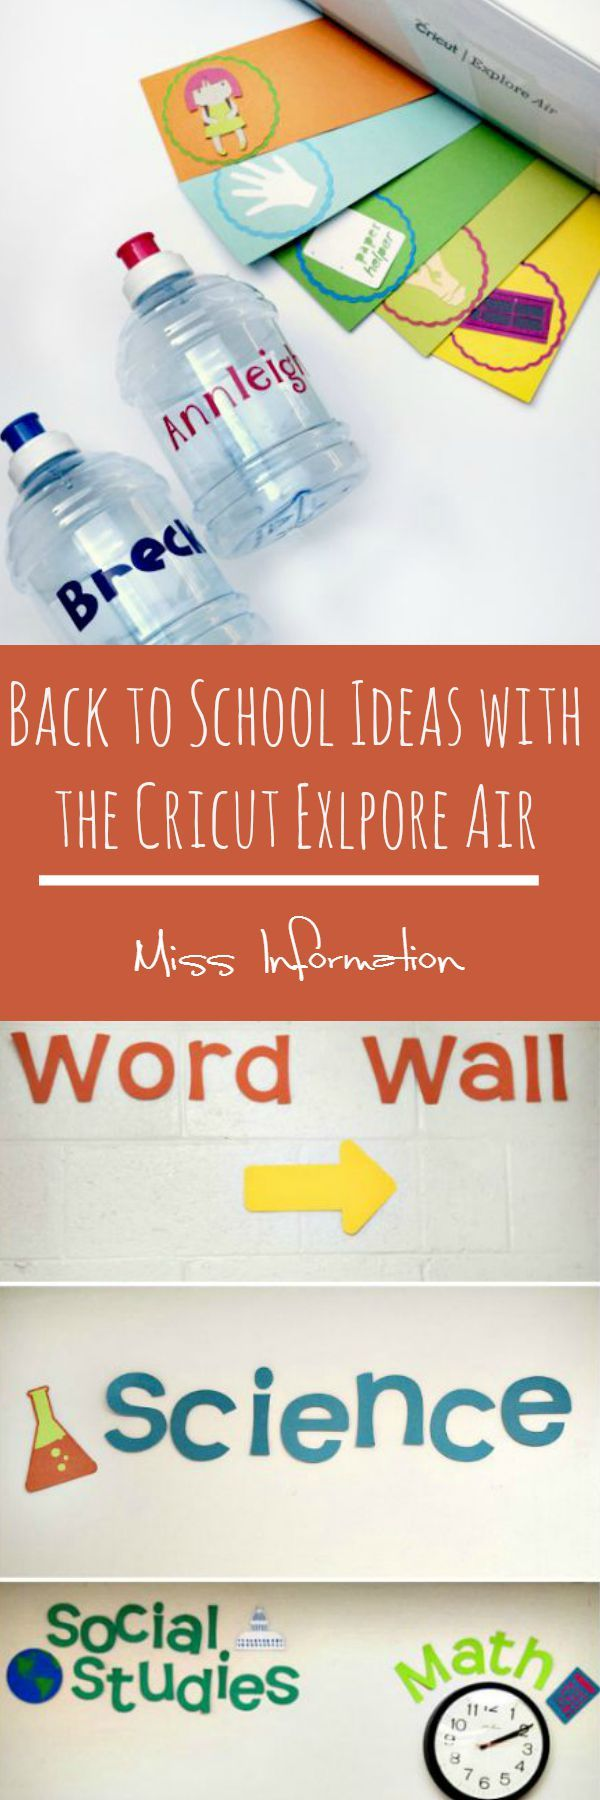 Classroom Ideas Using Cricut ~ Cricut explore air back to school ideas